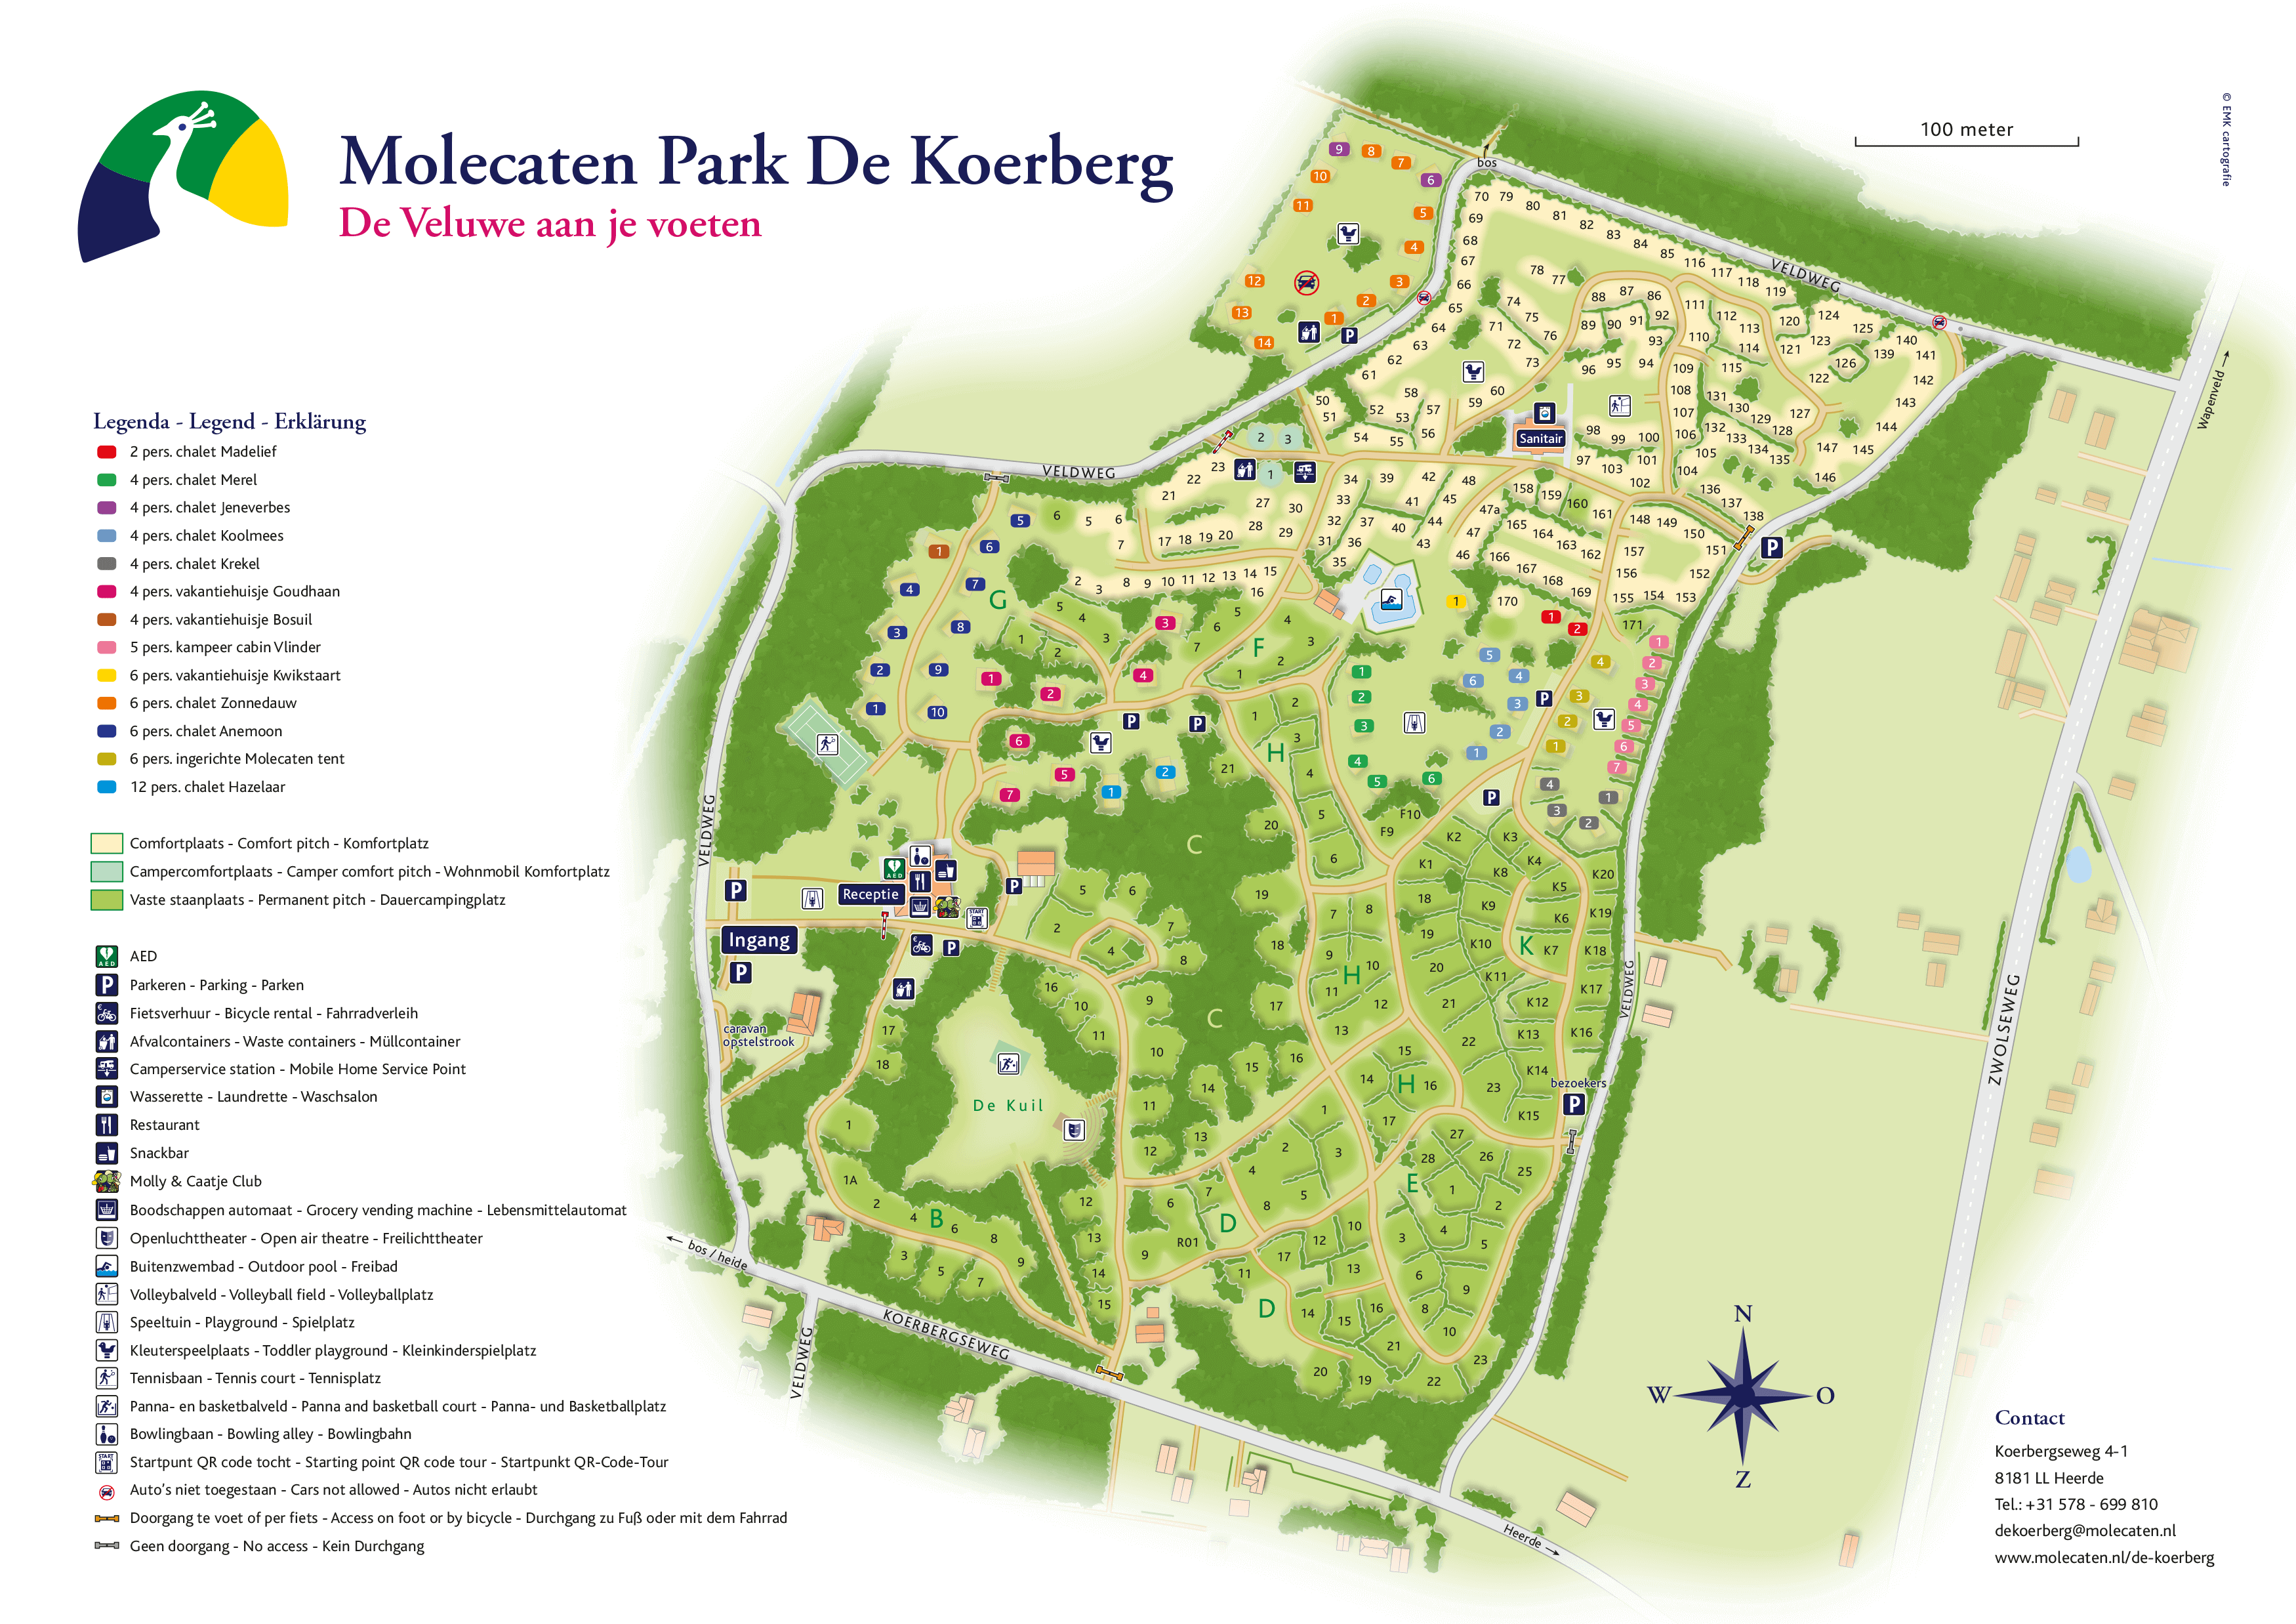 Molecaten Park De Koerberg accommodation.parkmap.alttext